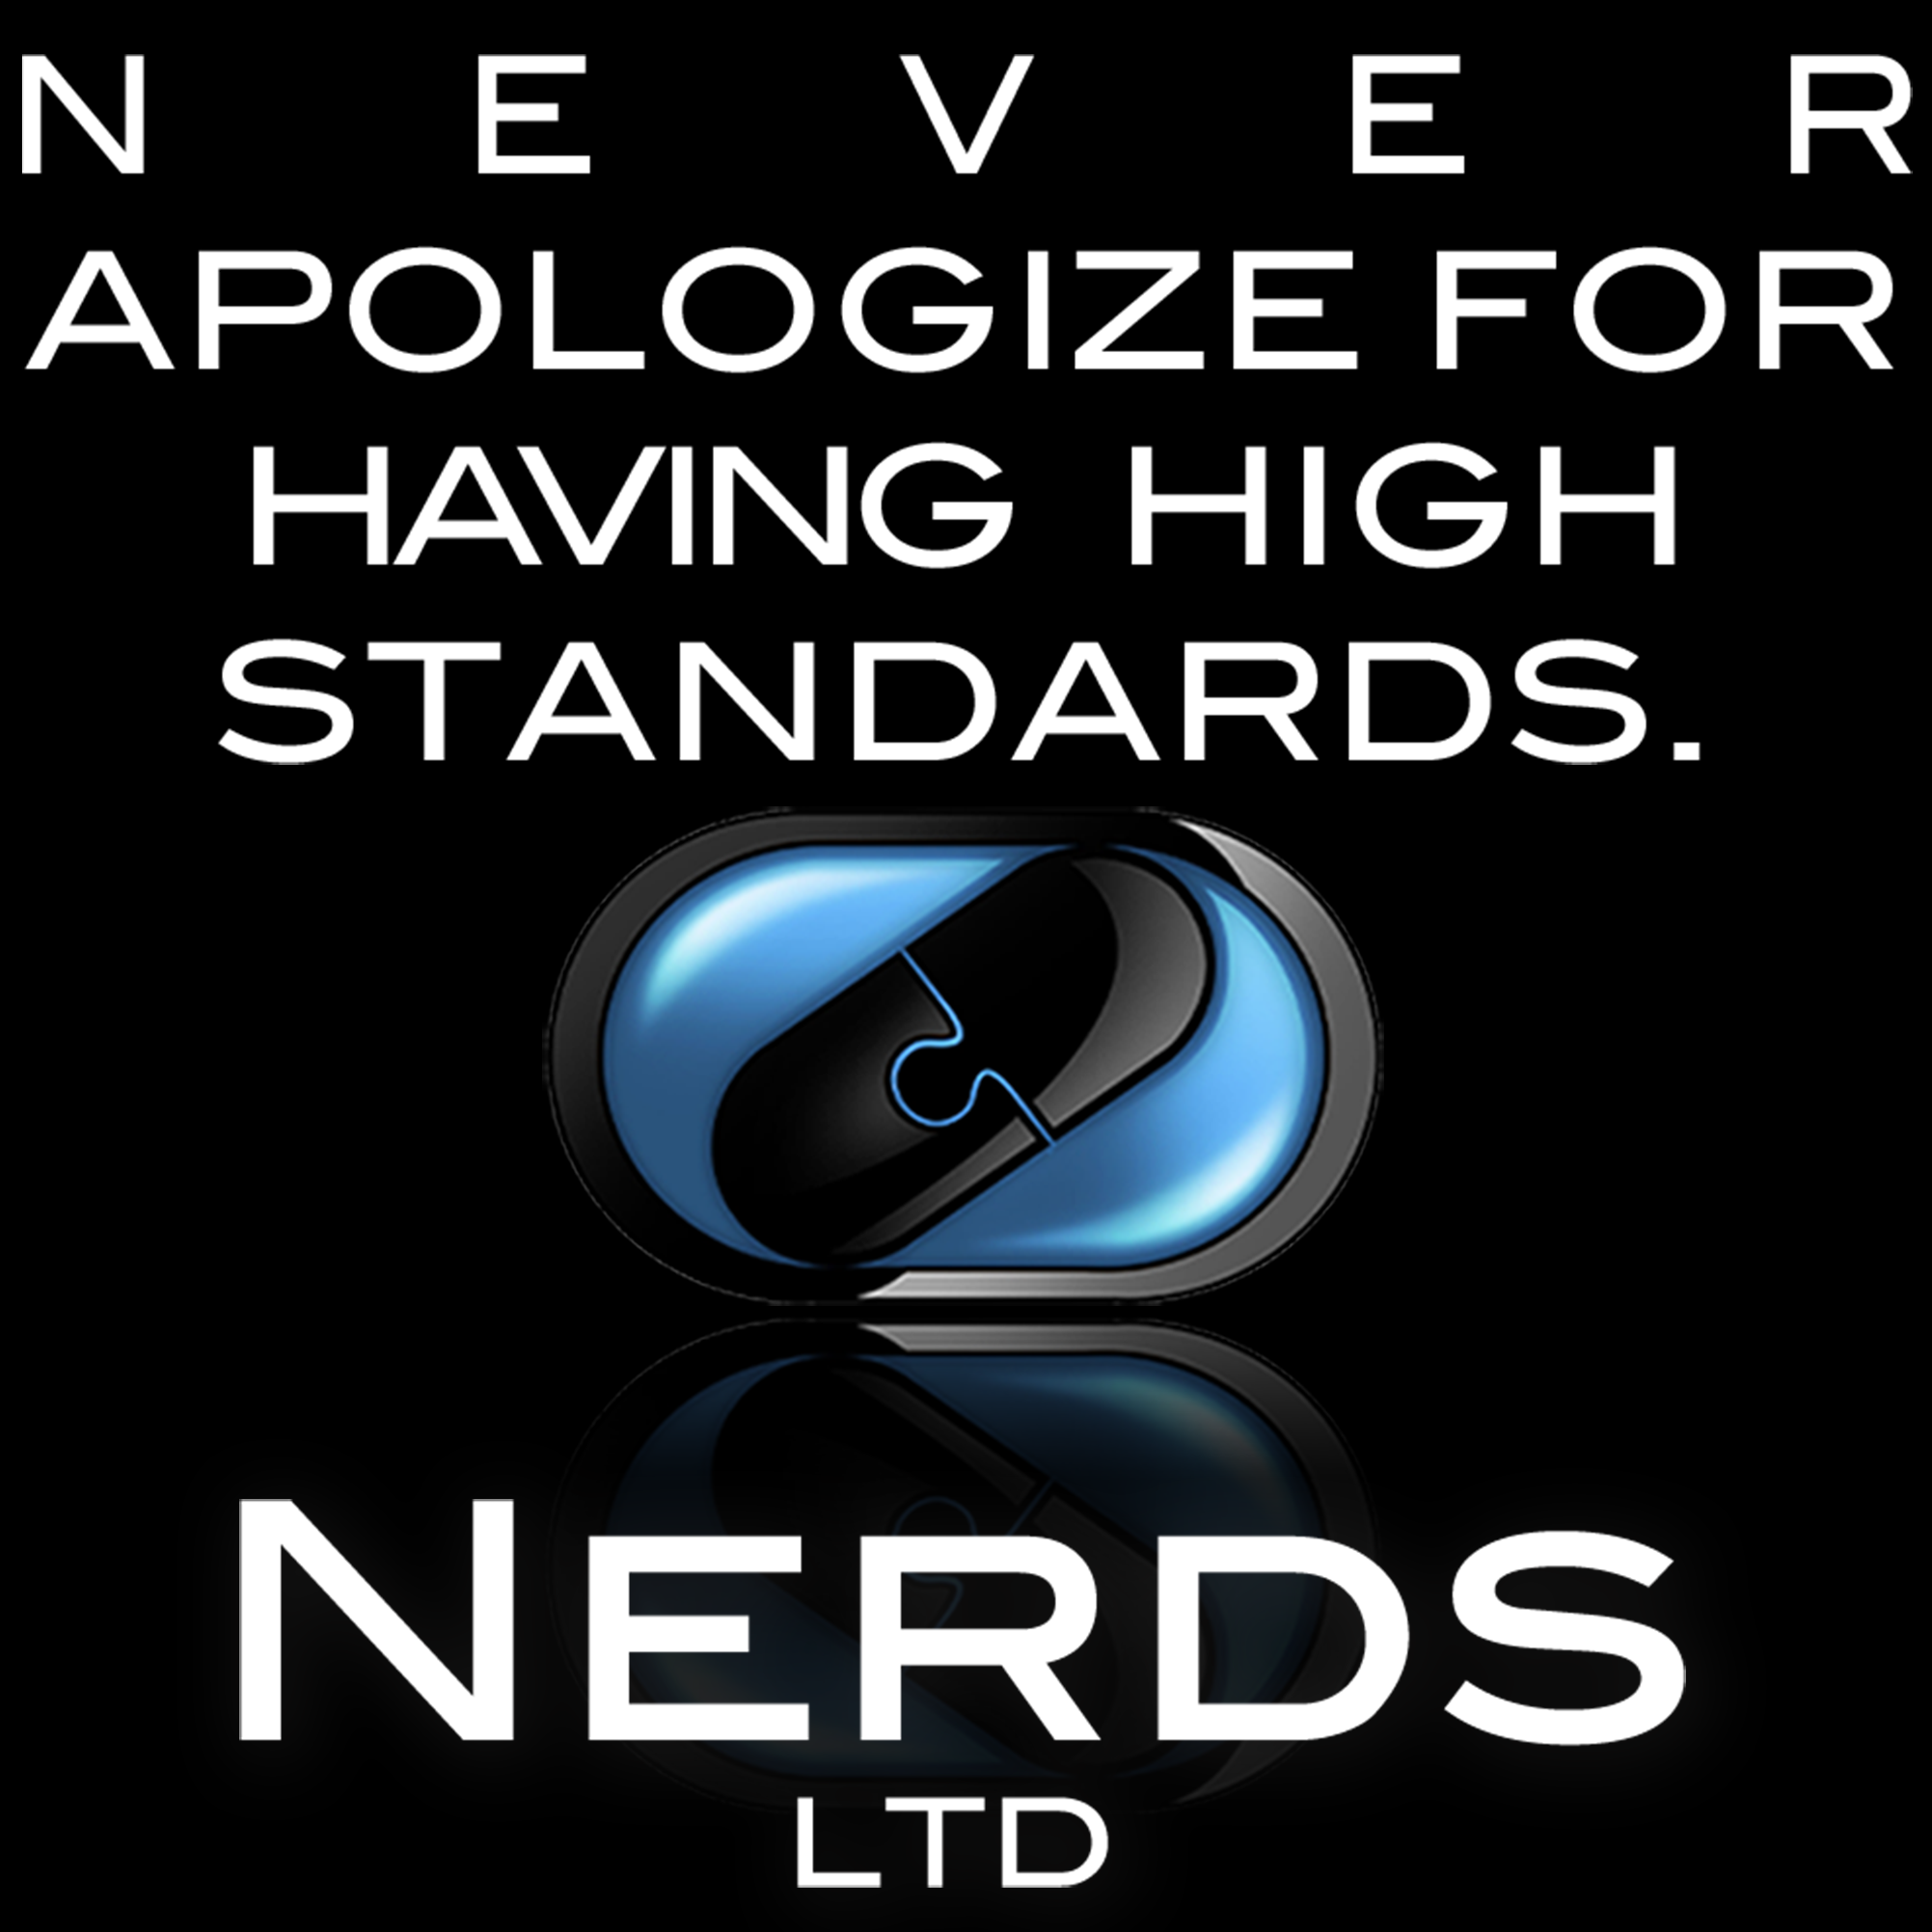 Nerds LTD Never Apologize for having high standards.png